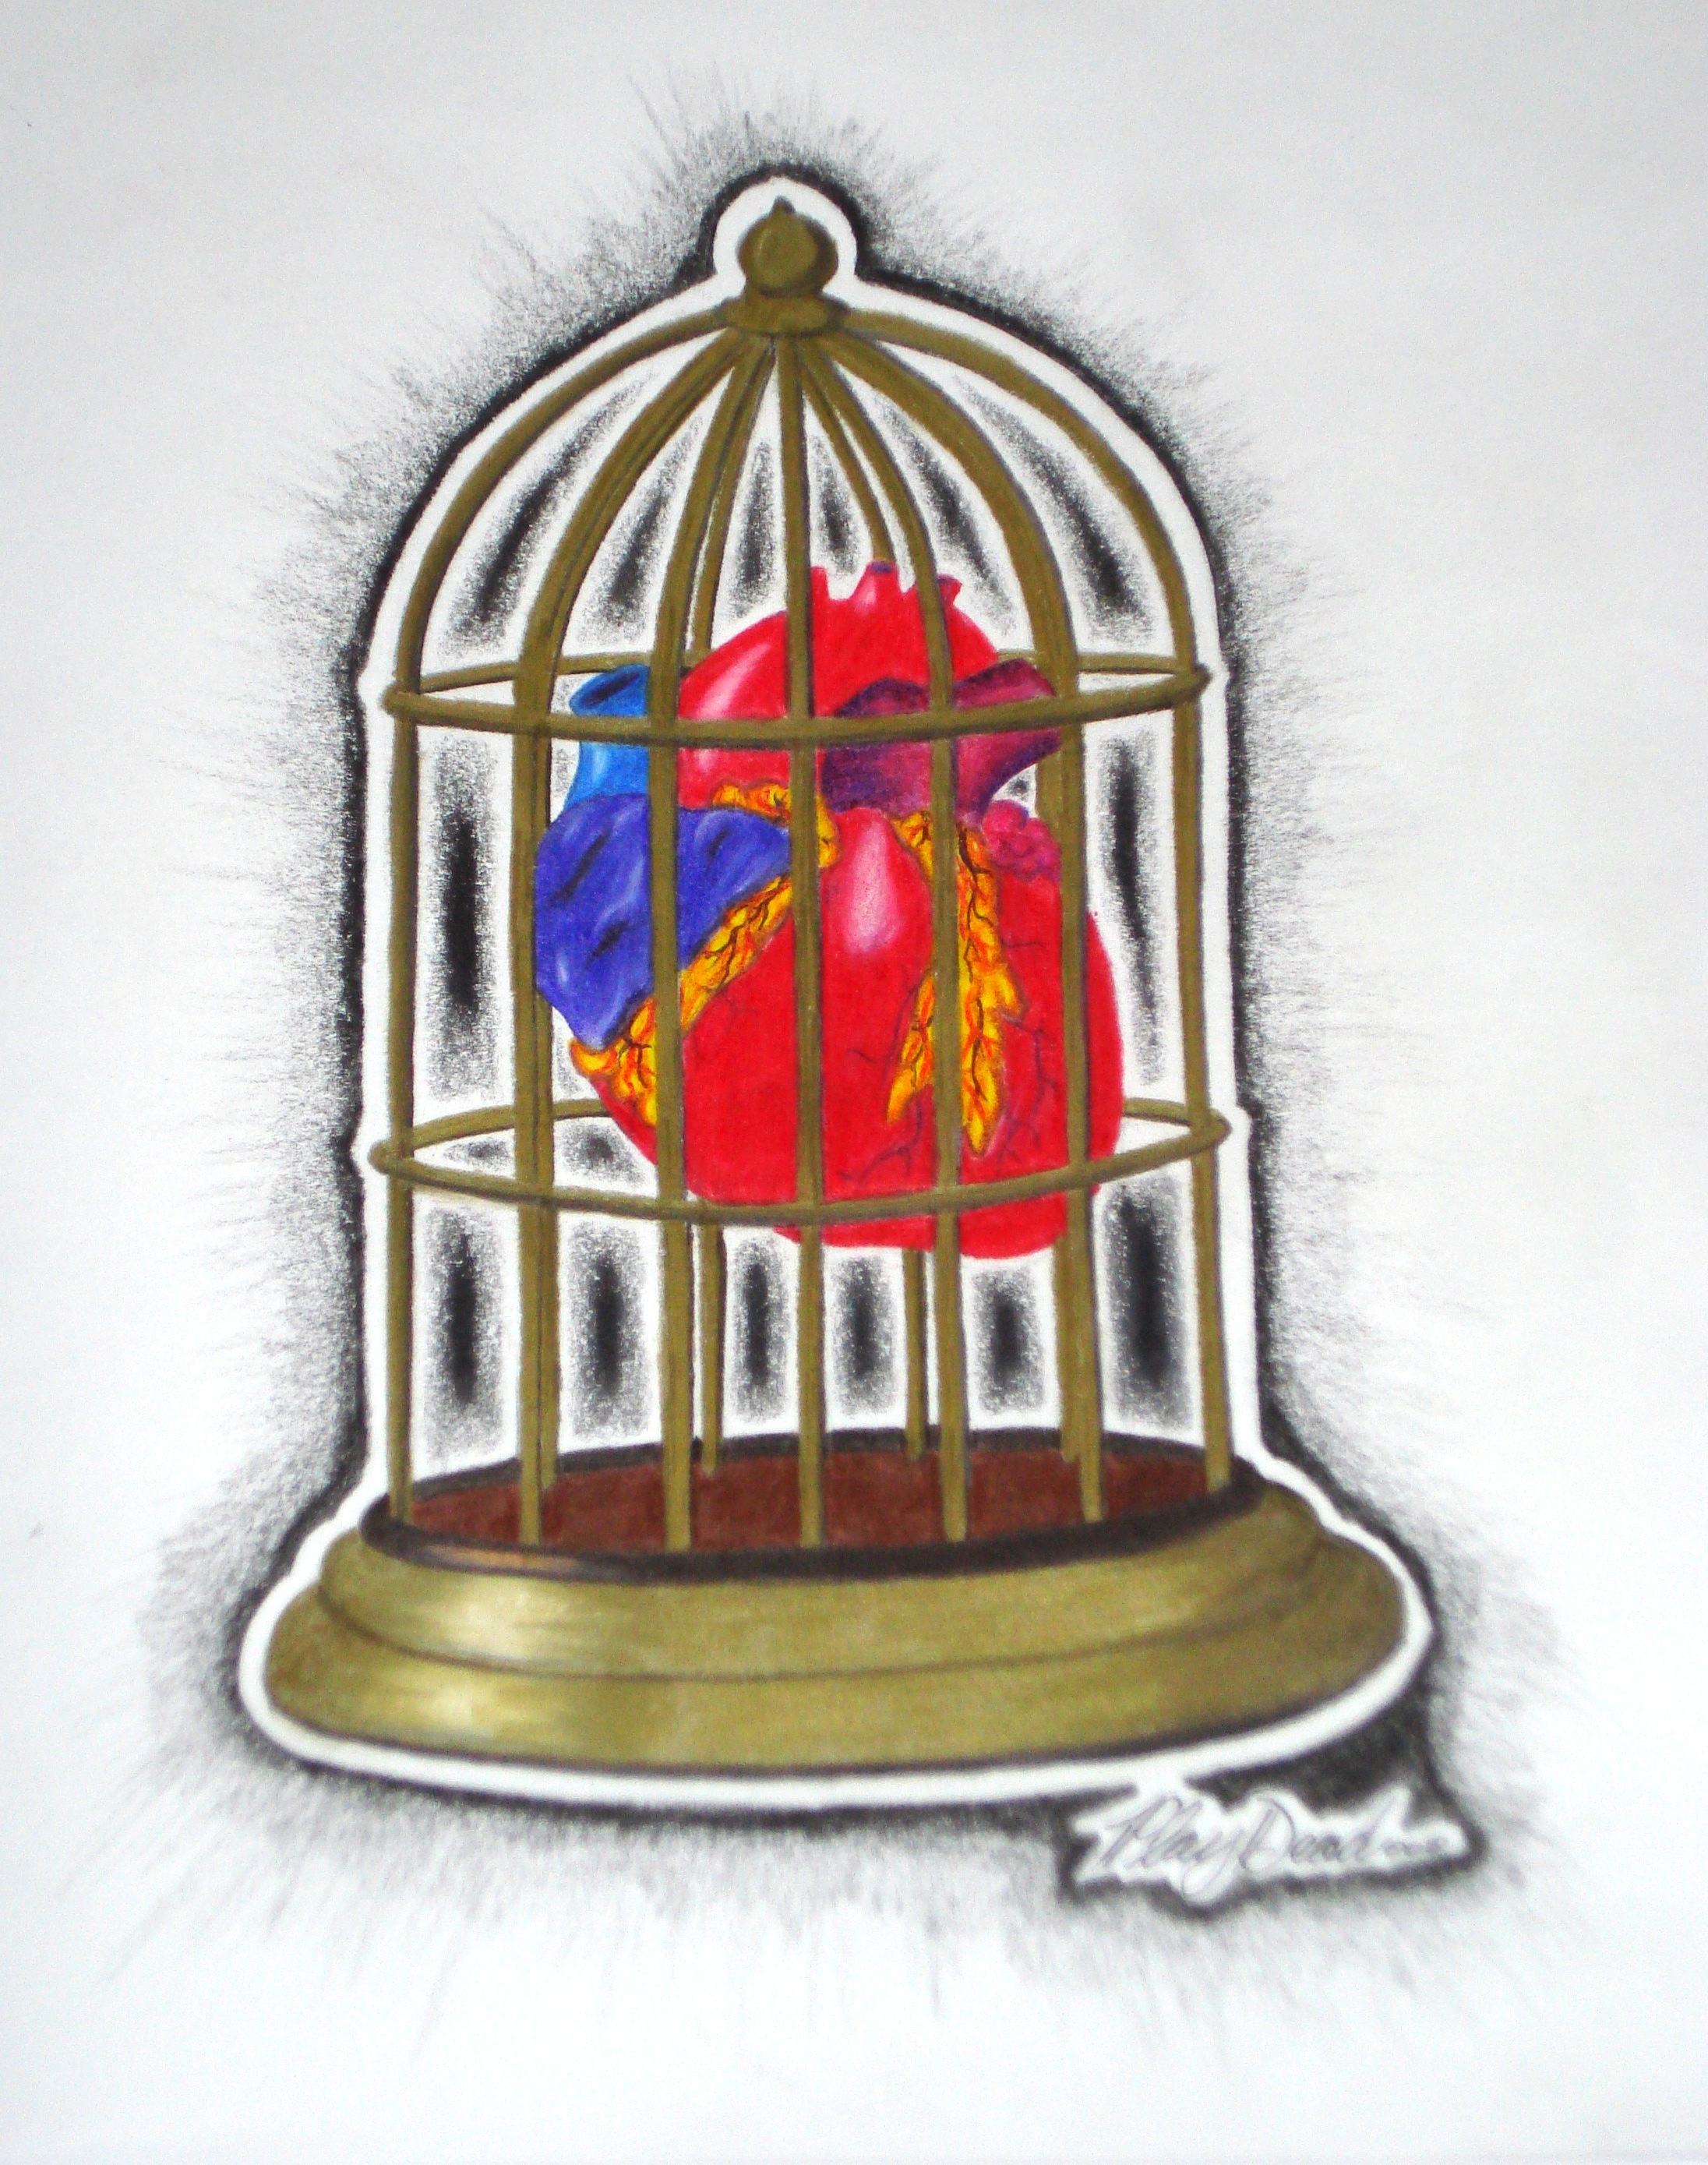 Heart in Cage (Still Available)